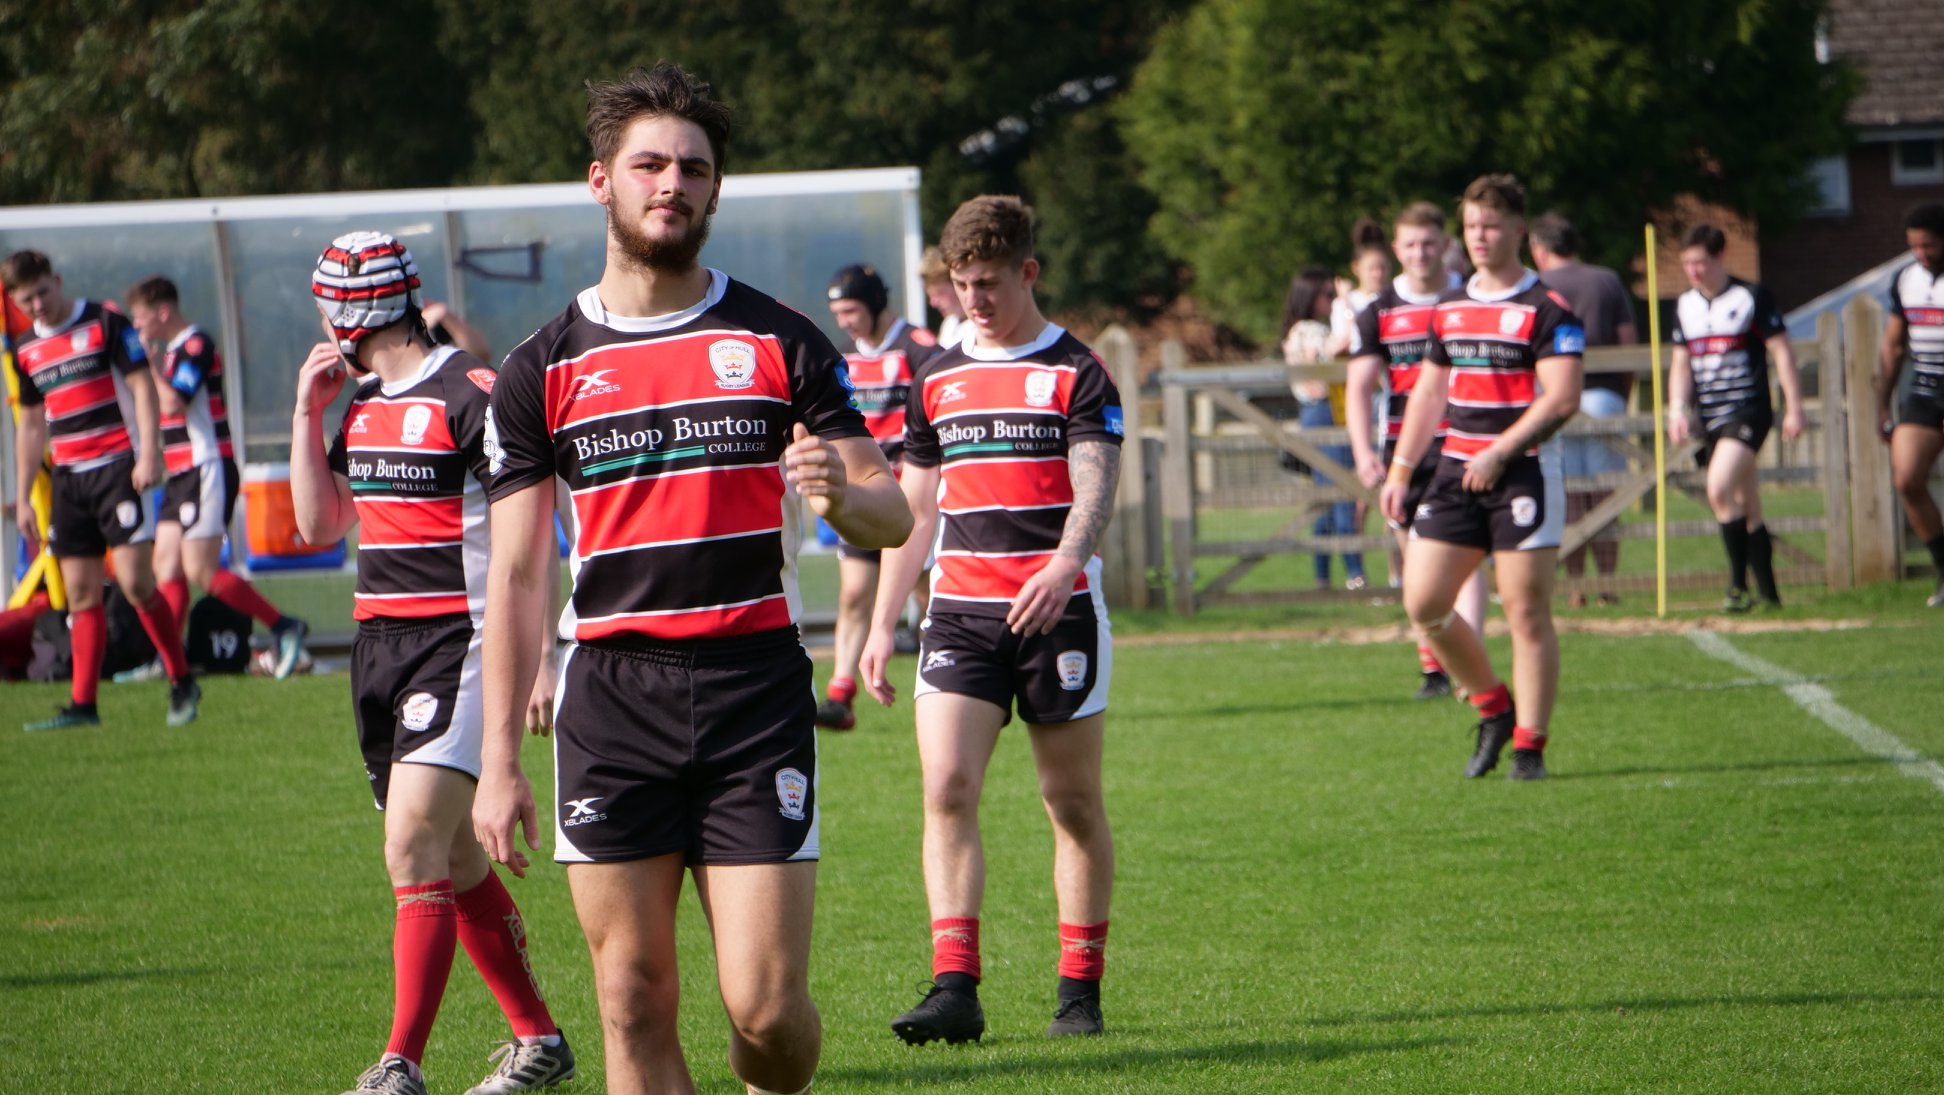 Josh Atkinson (centre) was listed in the GRM top 40 players of 2018